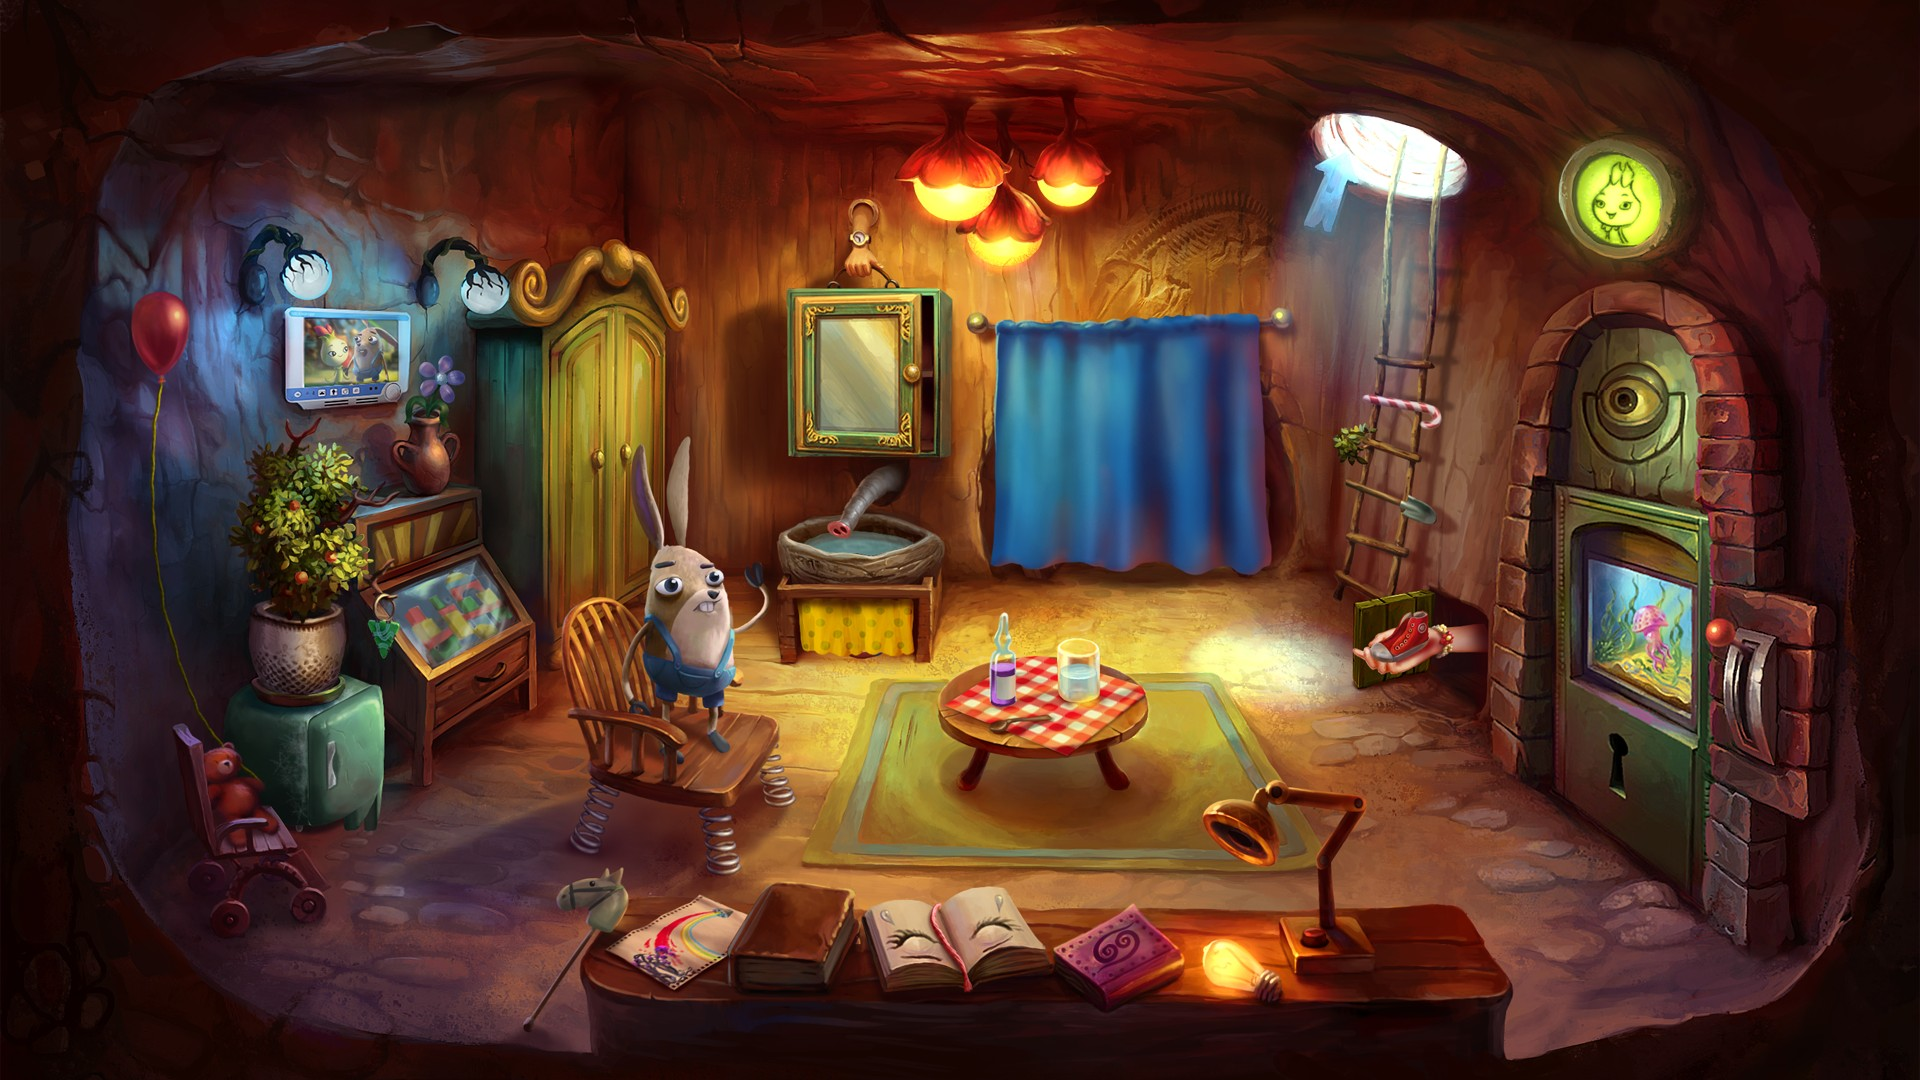 2D, adventure, Artifex Mundi, casual, Hidden Object, indie, My Brother Rabbit, My Brother Rabbit Review, PS4, PS4 Review, Puzzle, Raring 6/10